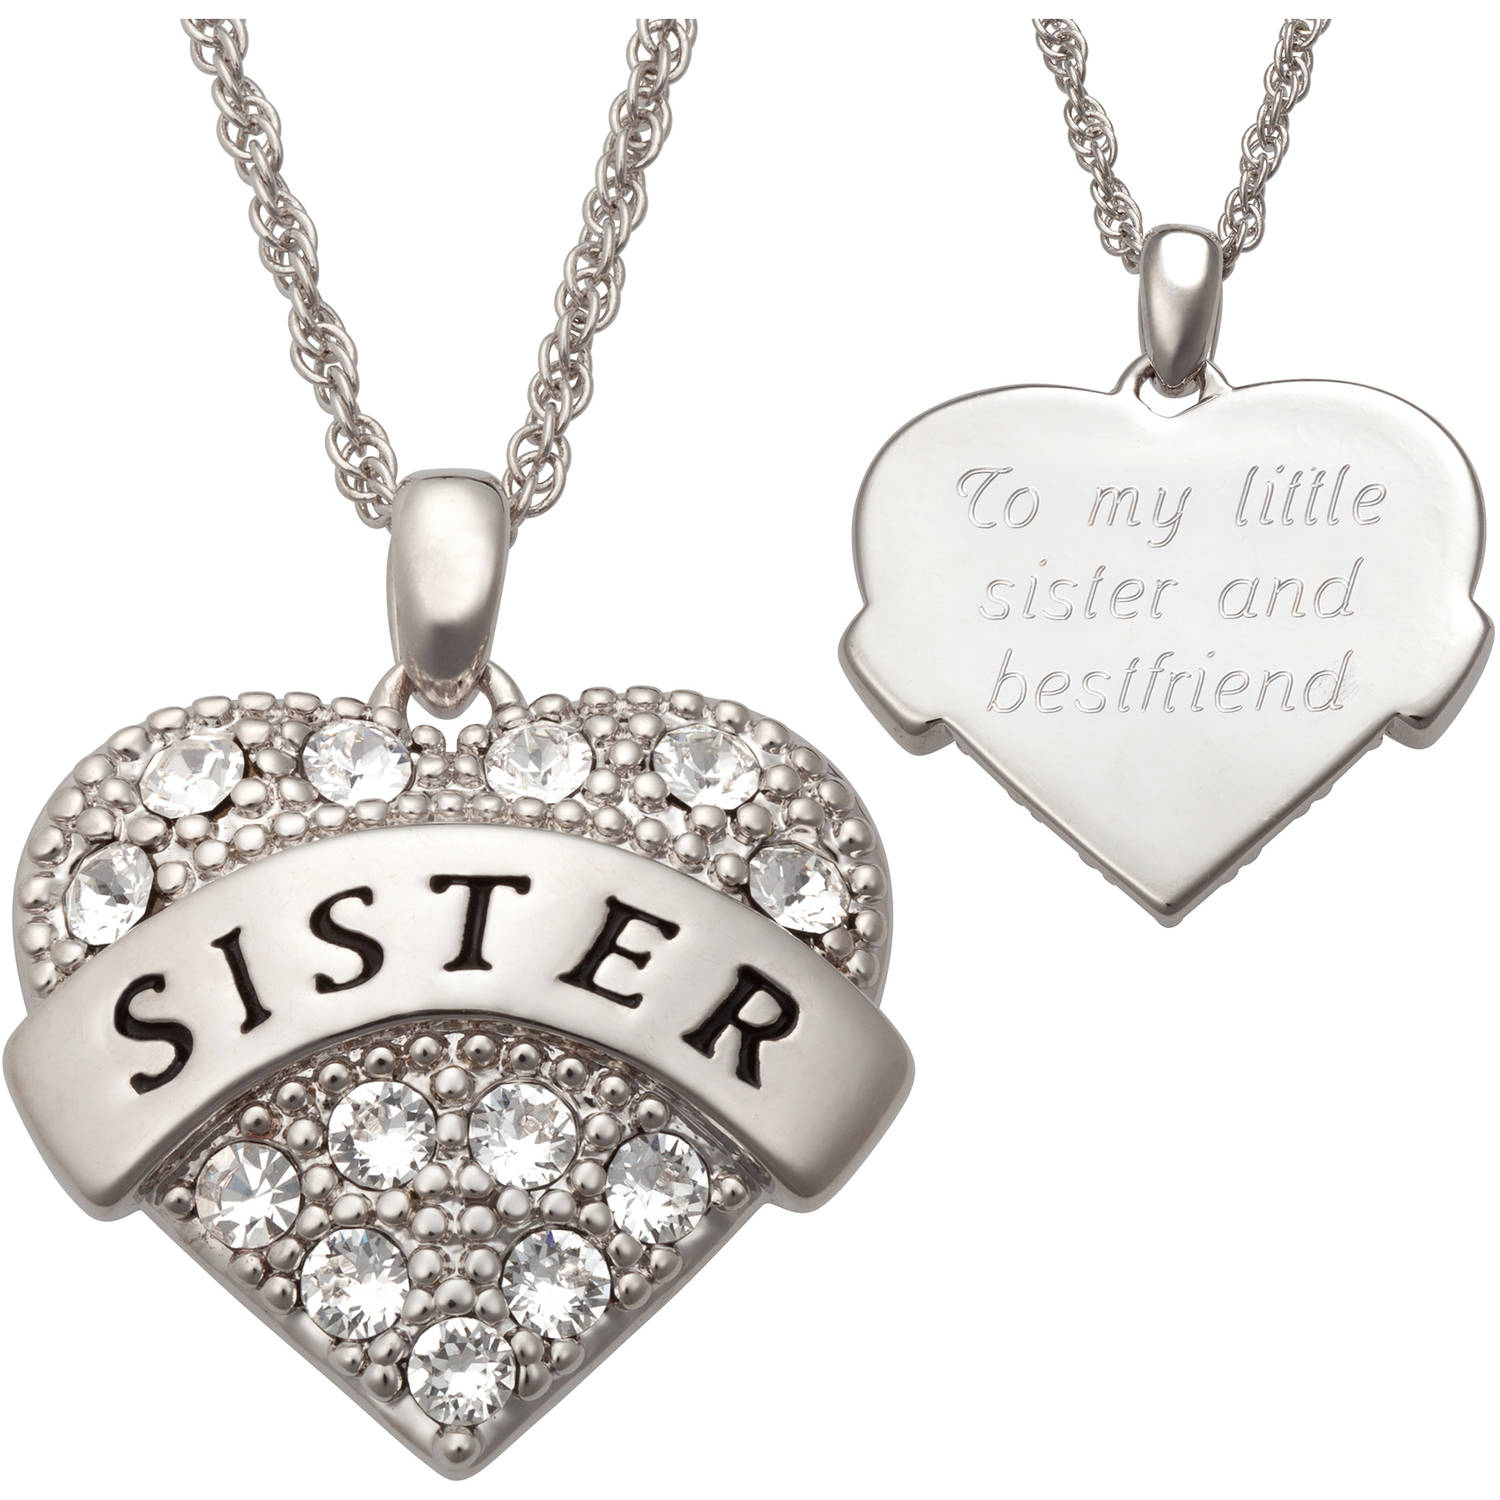 Personalized Crystal Rhodium-Plated Sister Heart Pendant